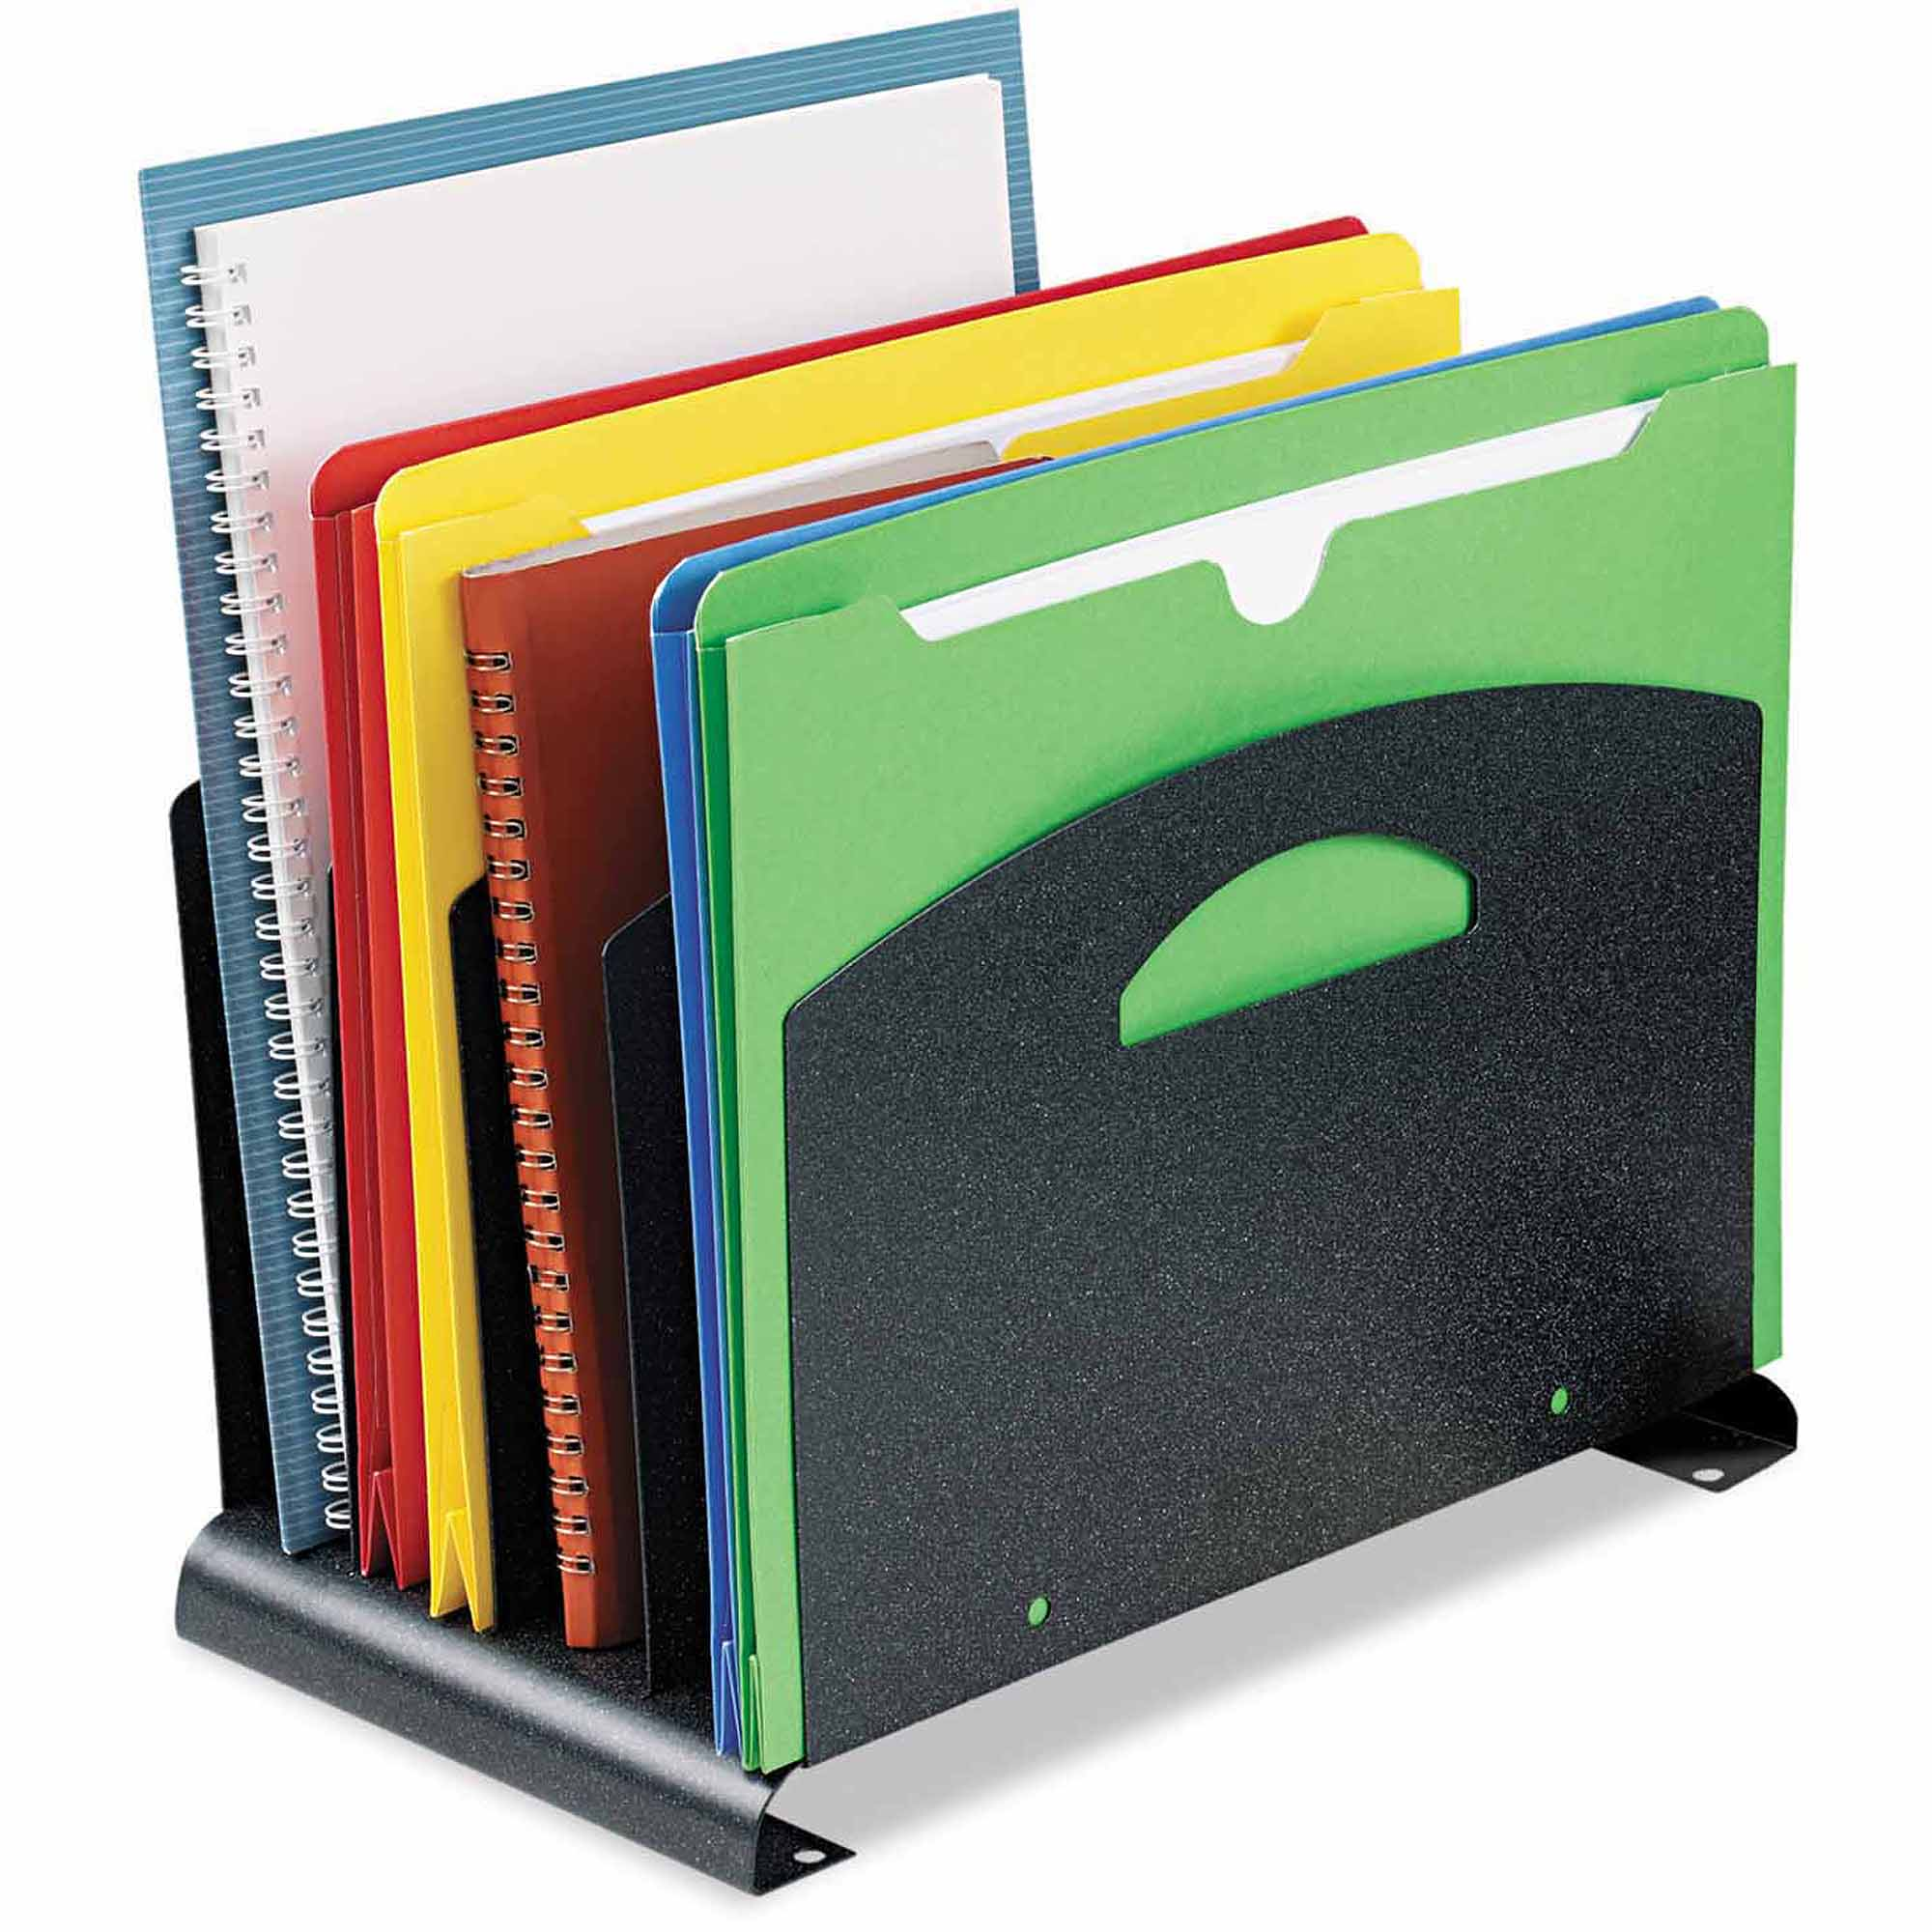 "SteelMaster Contemporary Organizer with Handle, 4 Sections, Steel, 7.25"" x 12"" x 7.5"", Granite"